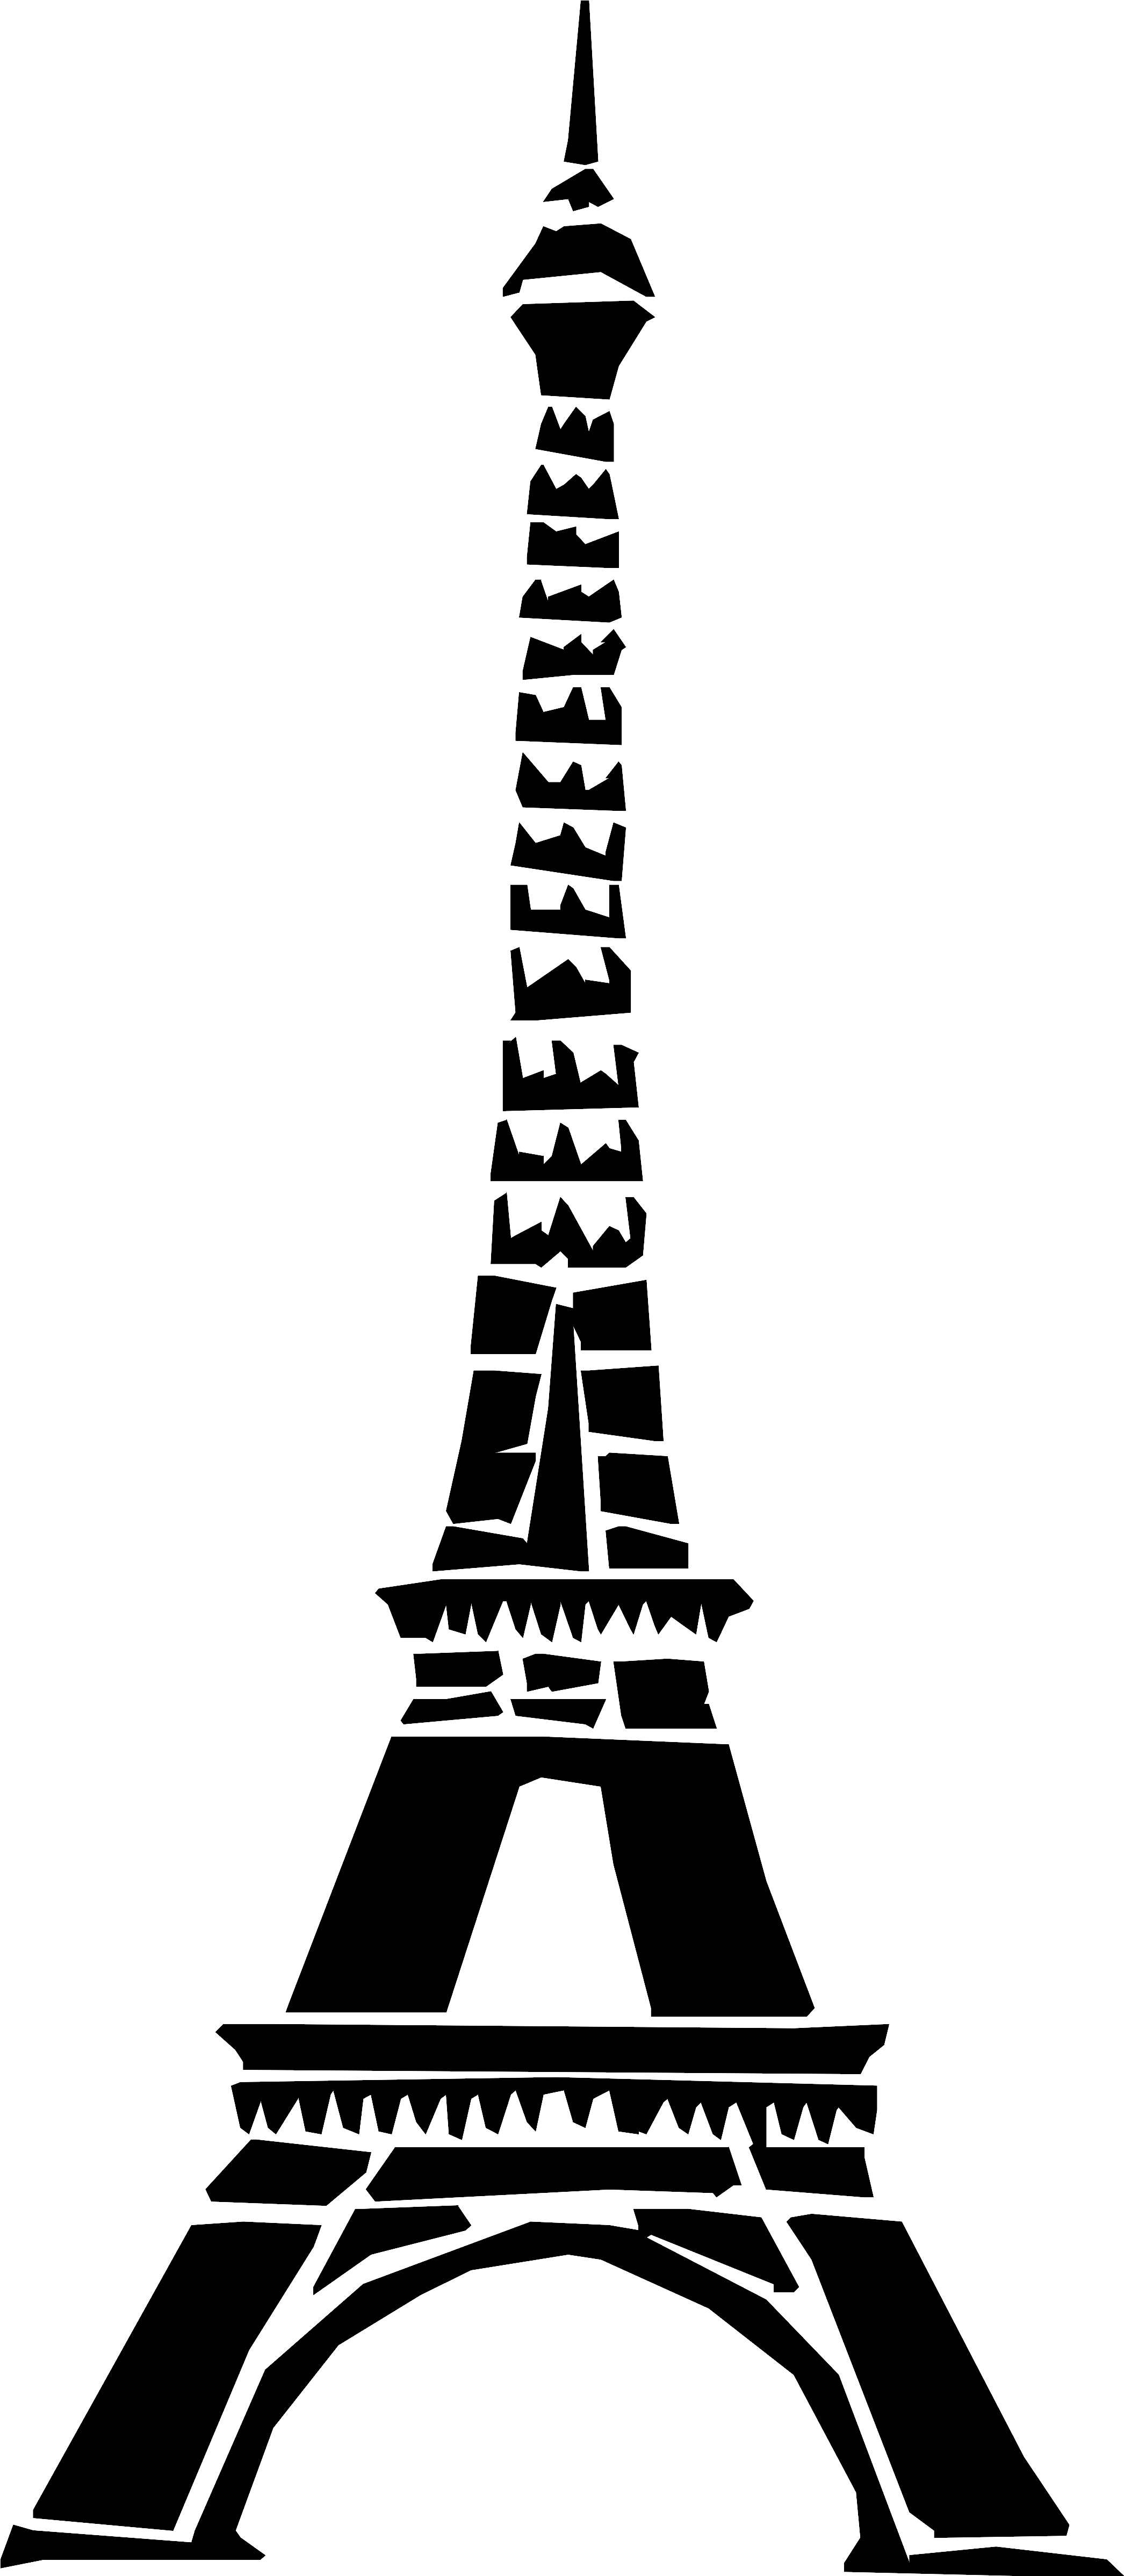 Eiffel Tower Clip Art Png Transparent Png - Full Size ...